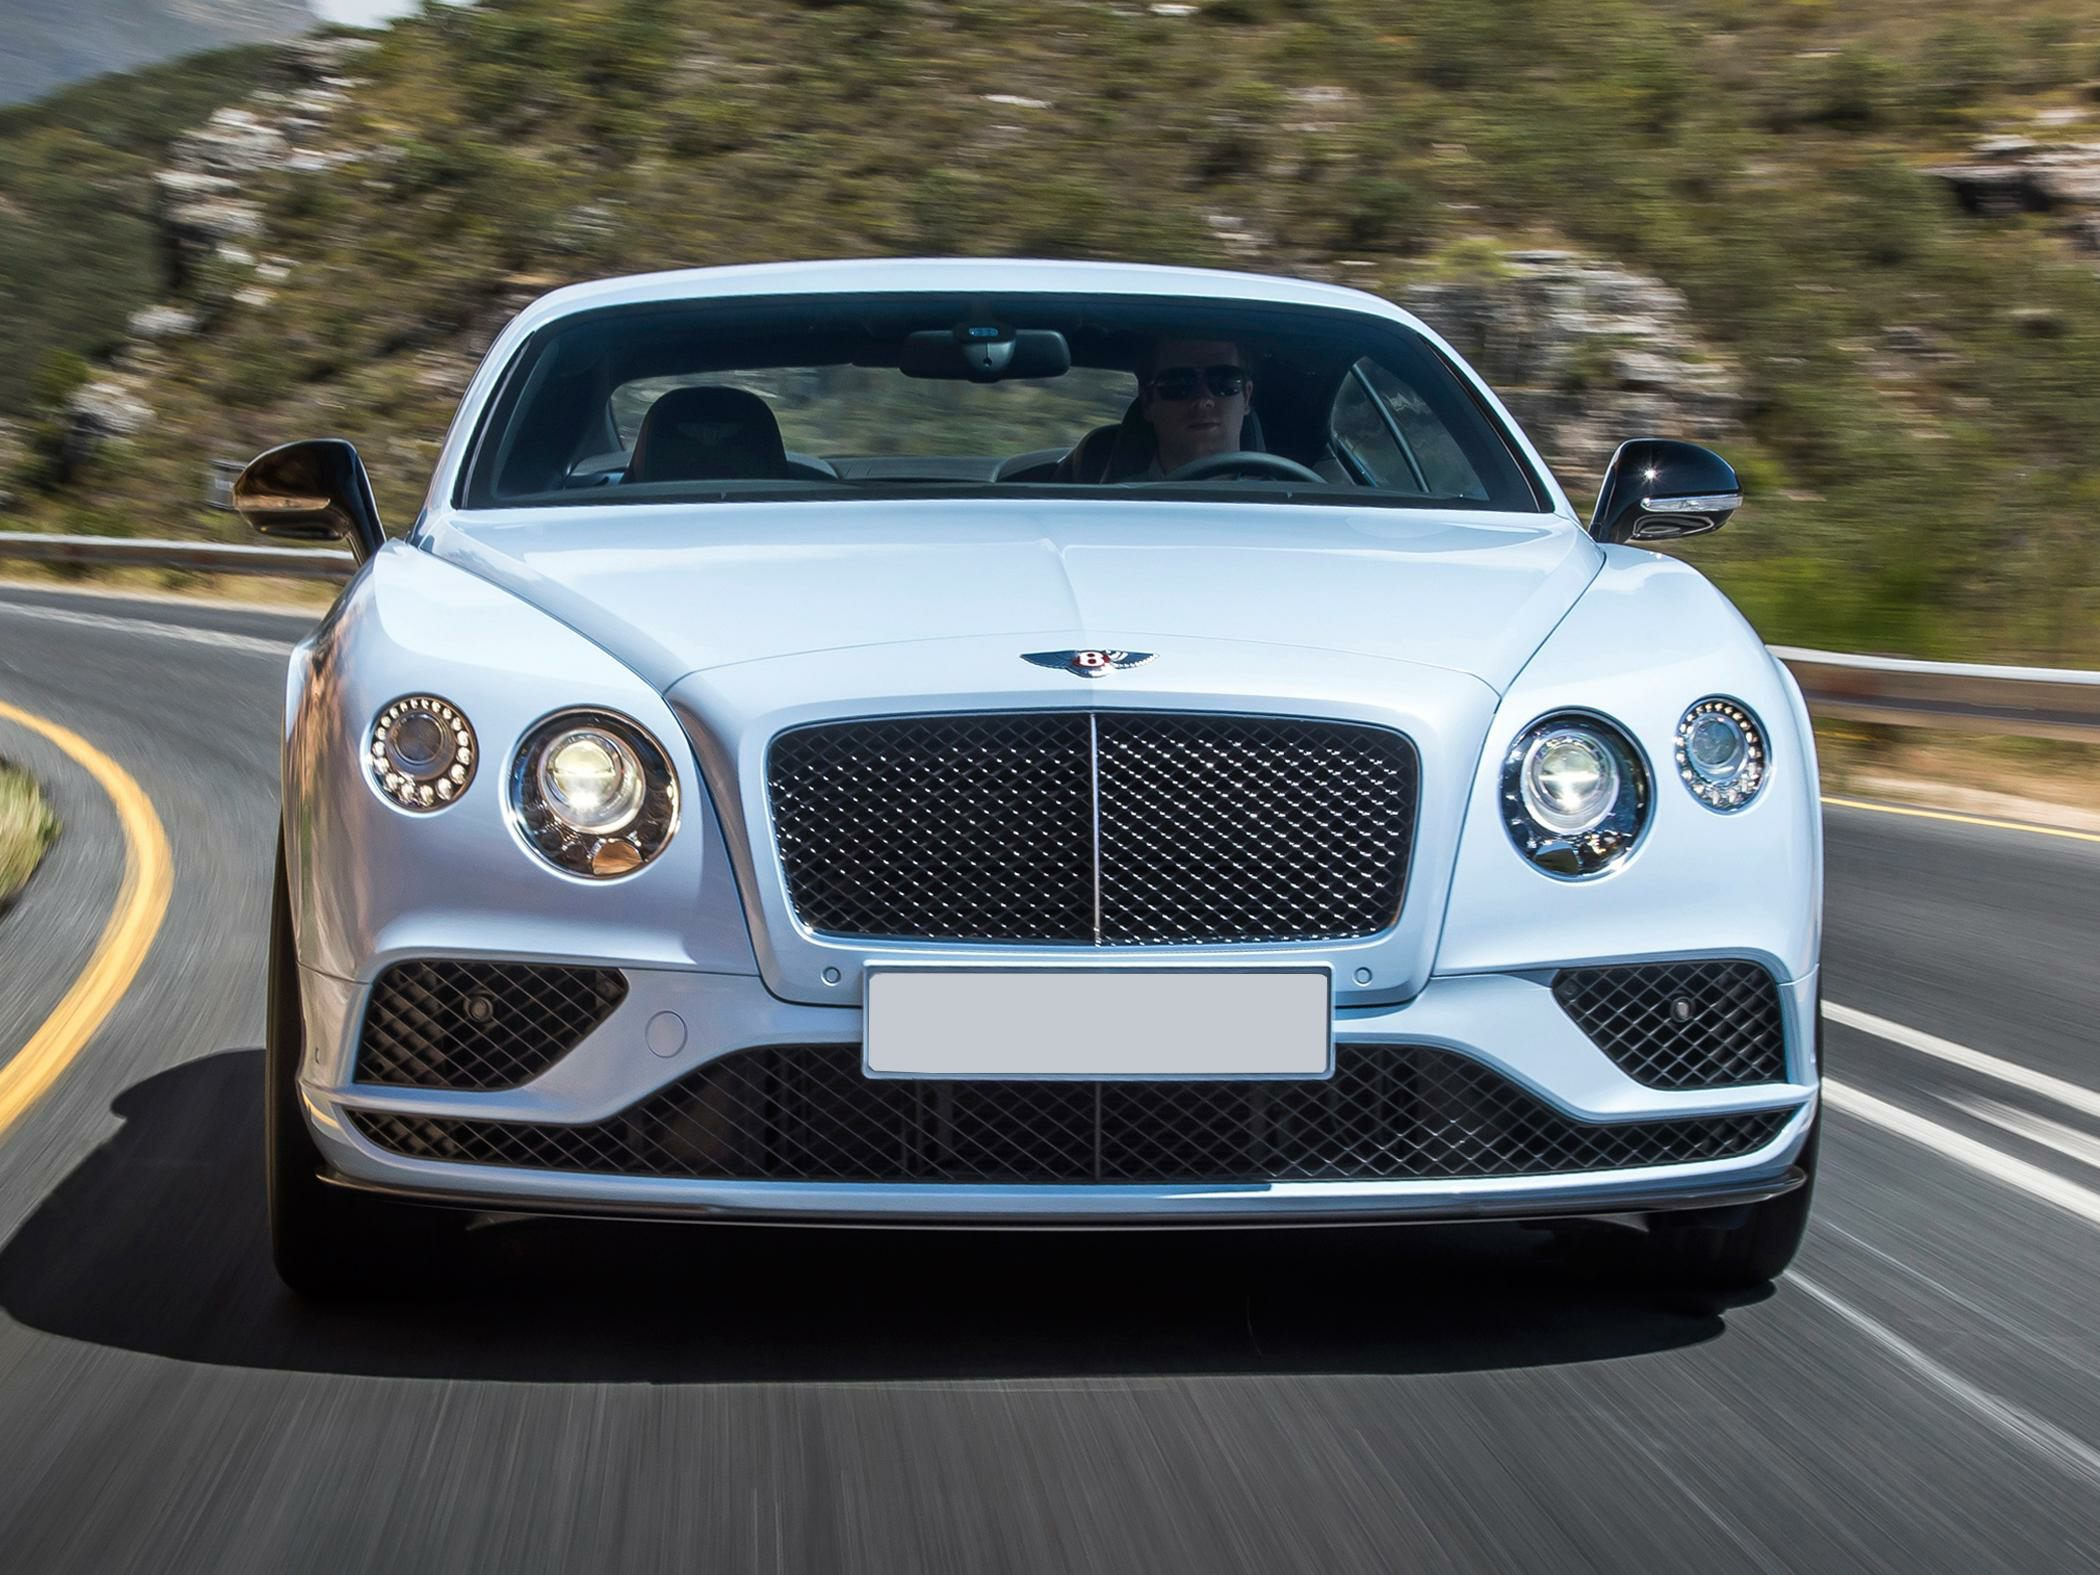 Img Usc Bec B on 2005 Bentley Continental Gt Msrp